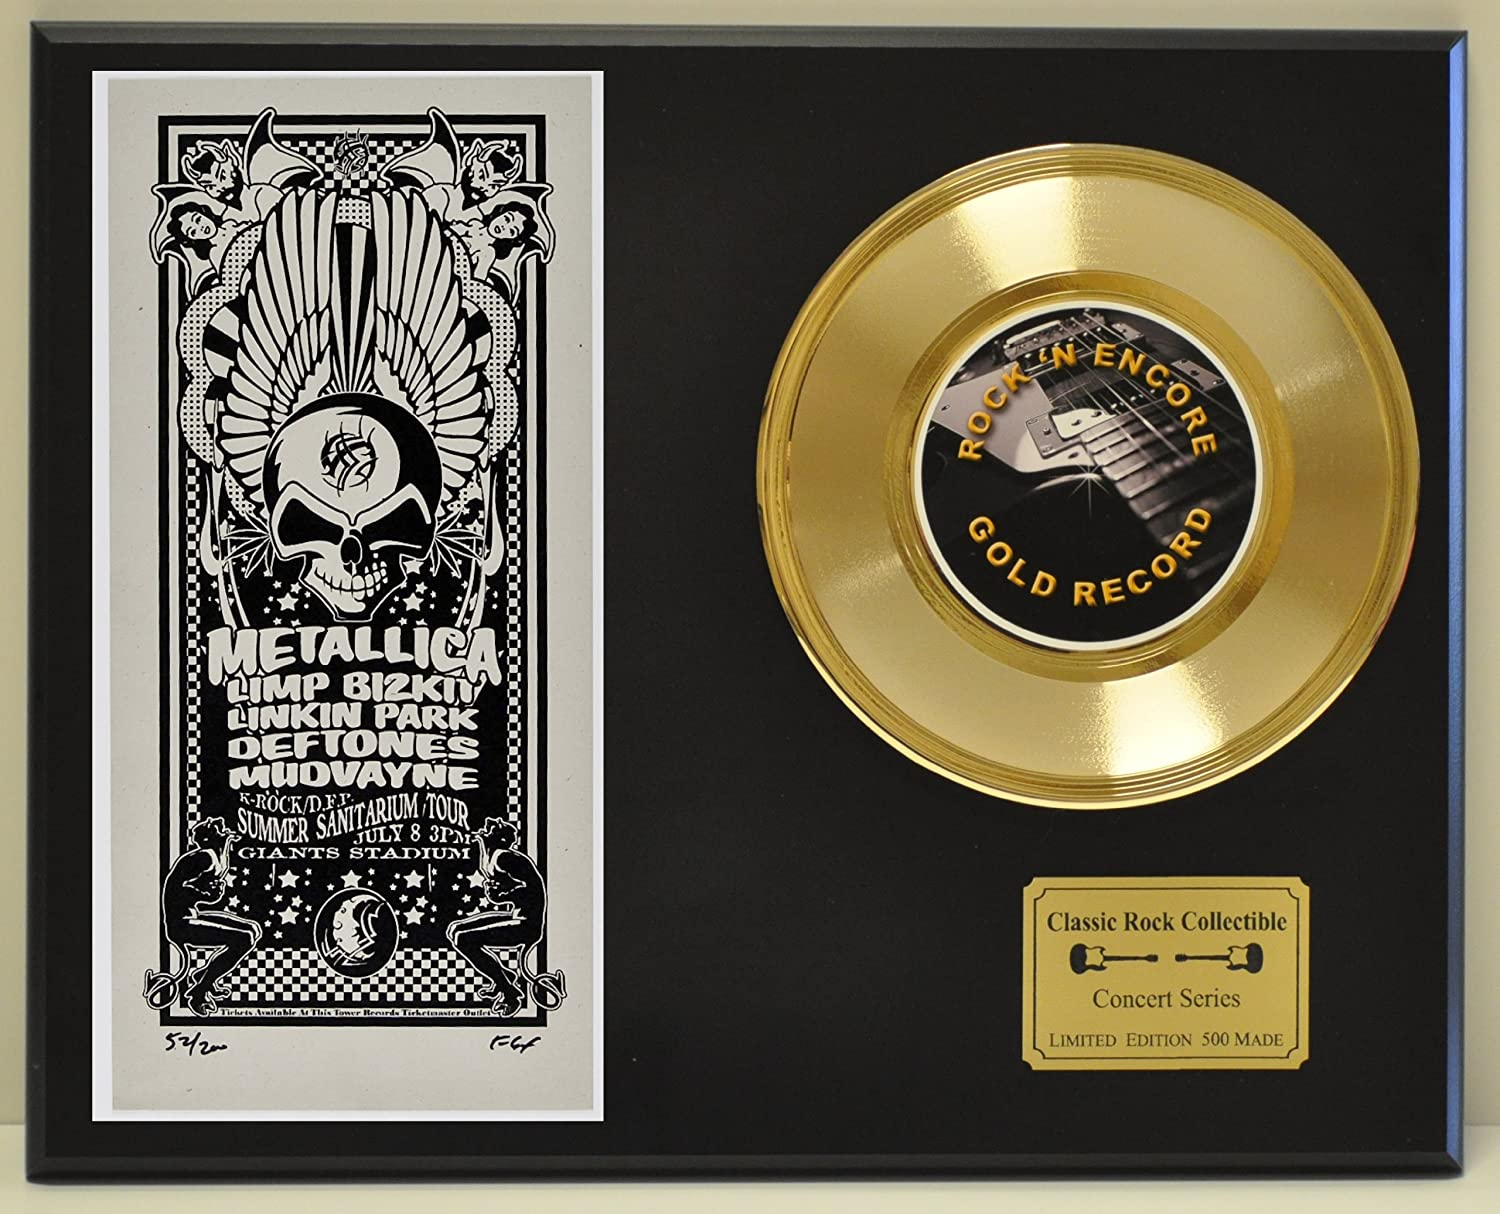 METALLICA Limited Edition Gold 45 Record Display. Only 500 made. Limited quanities. FREE US SHIPPING by  Classic Rock Collectibles